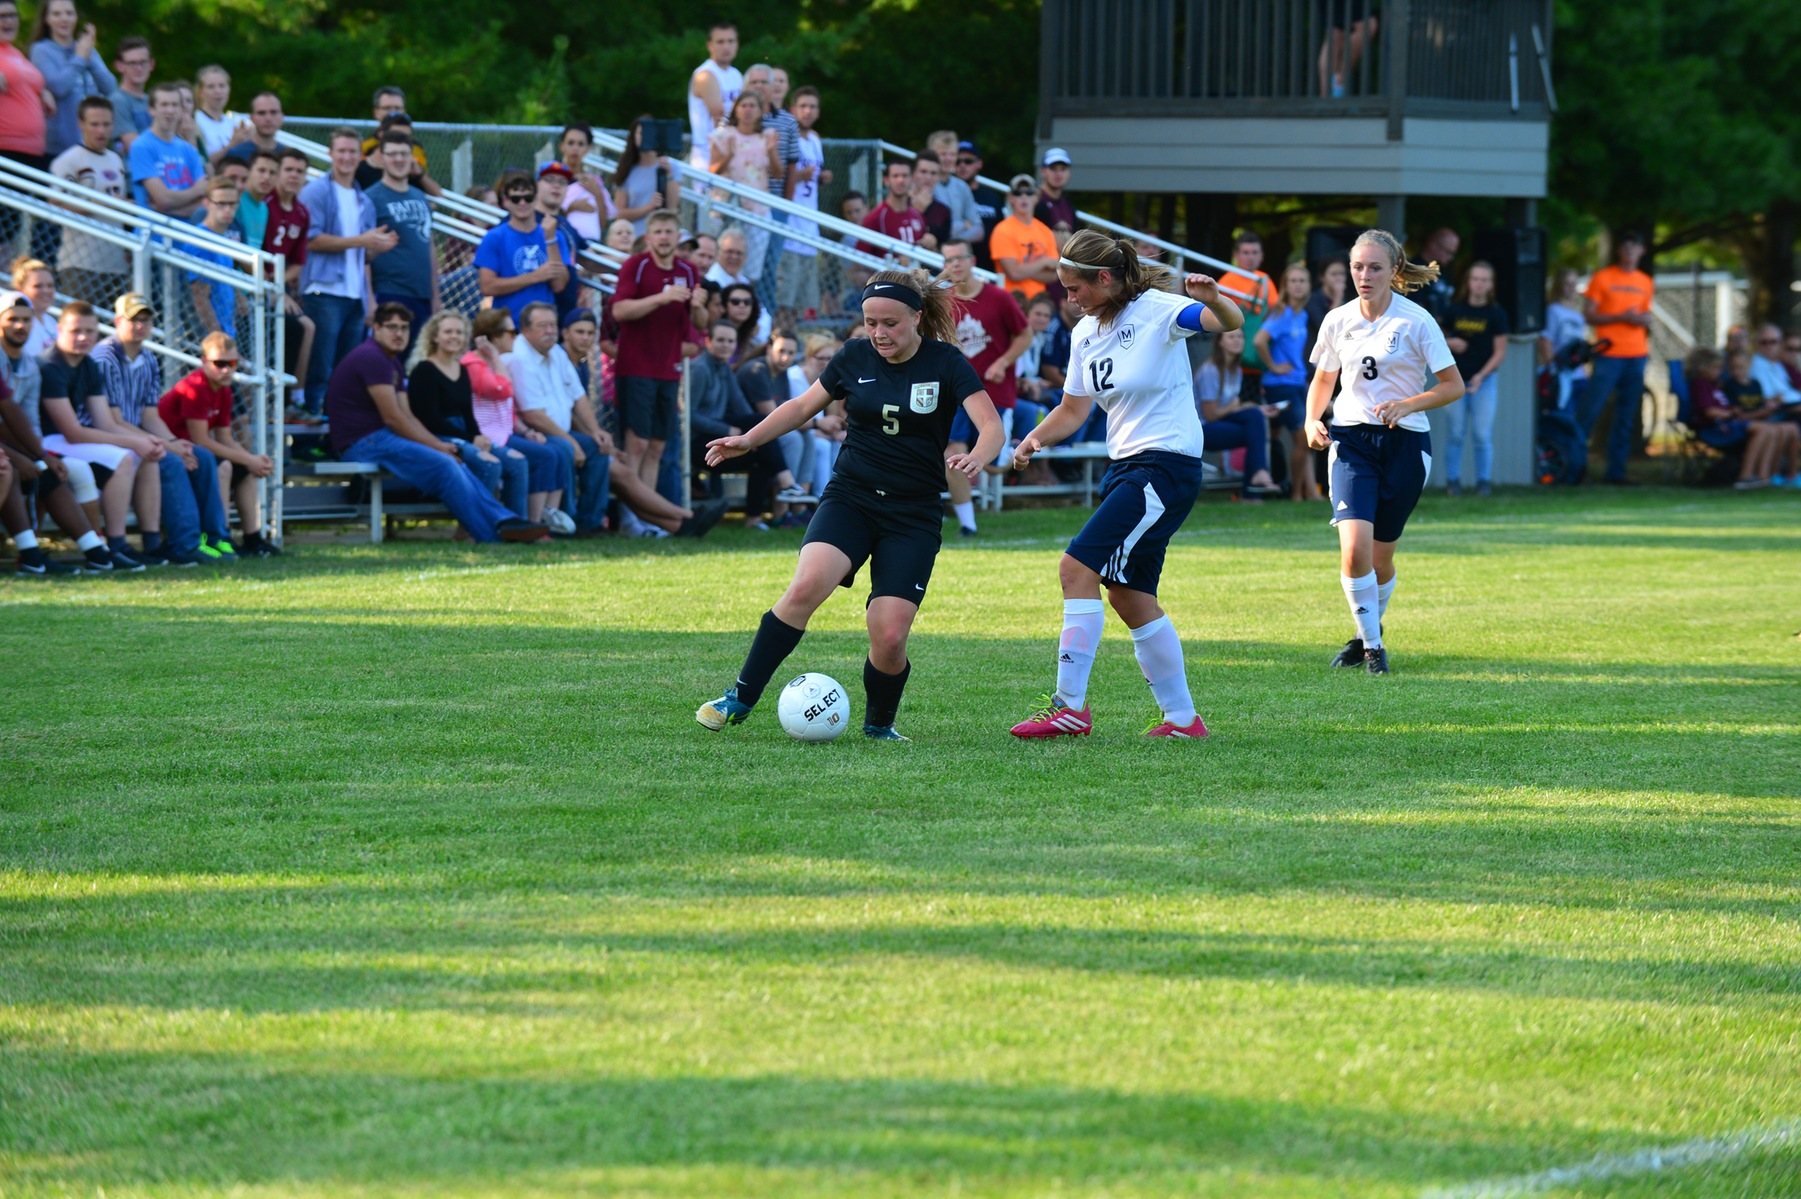 Eagles Look Strong in Opening Game